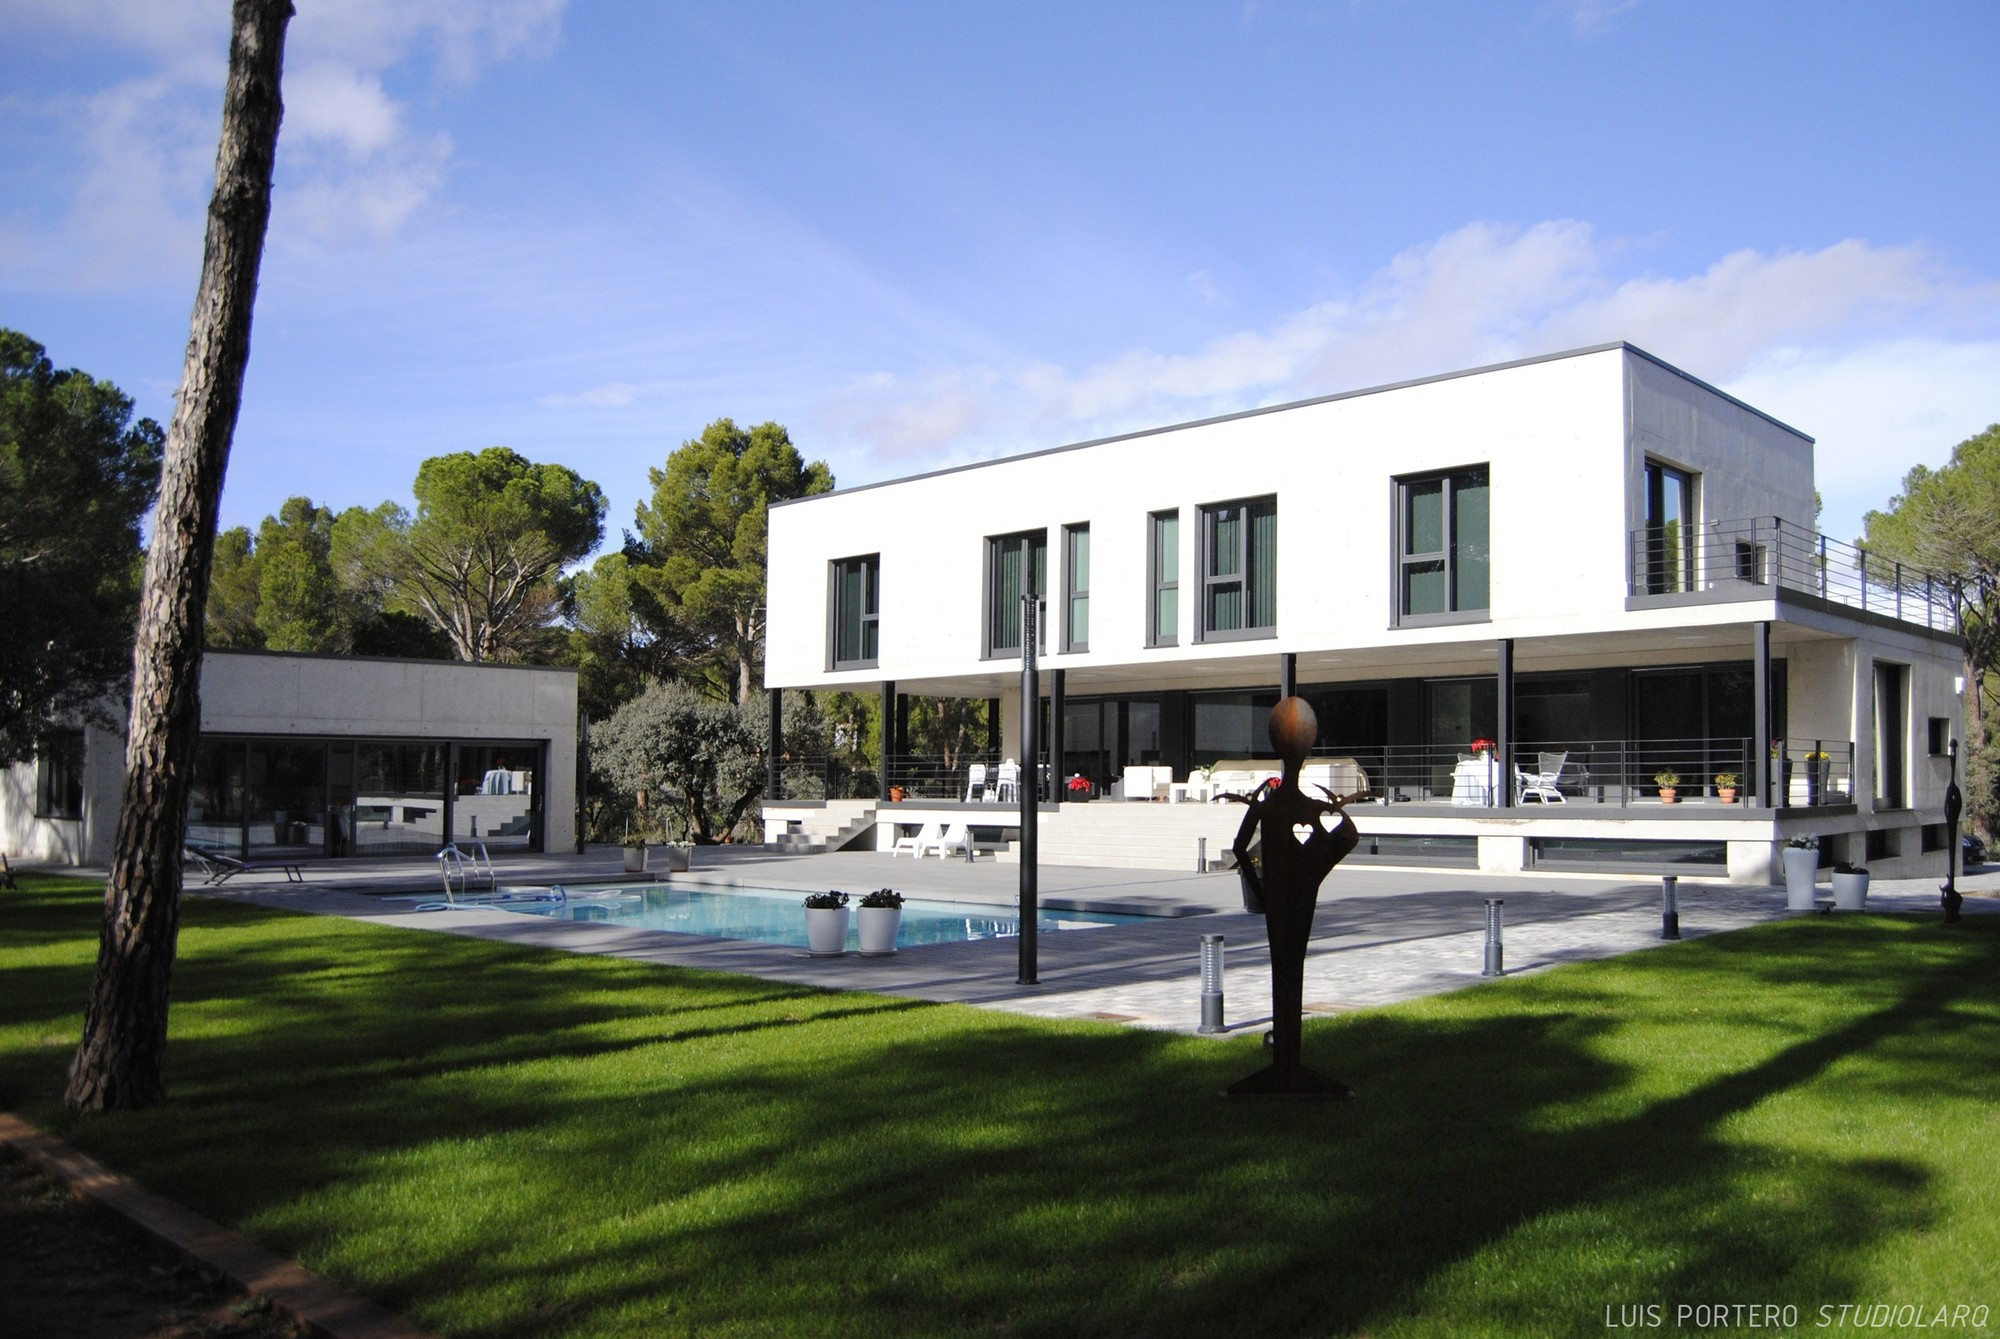 Albacete tag archdaily colombia - Arquitectos albacete ...